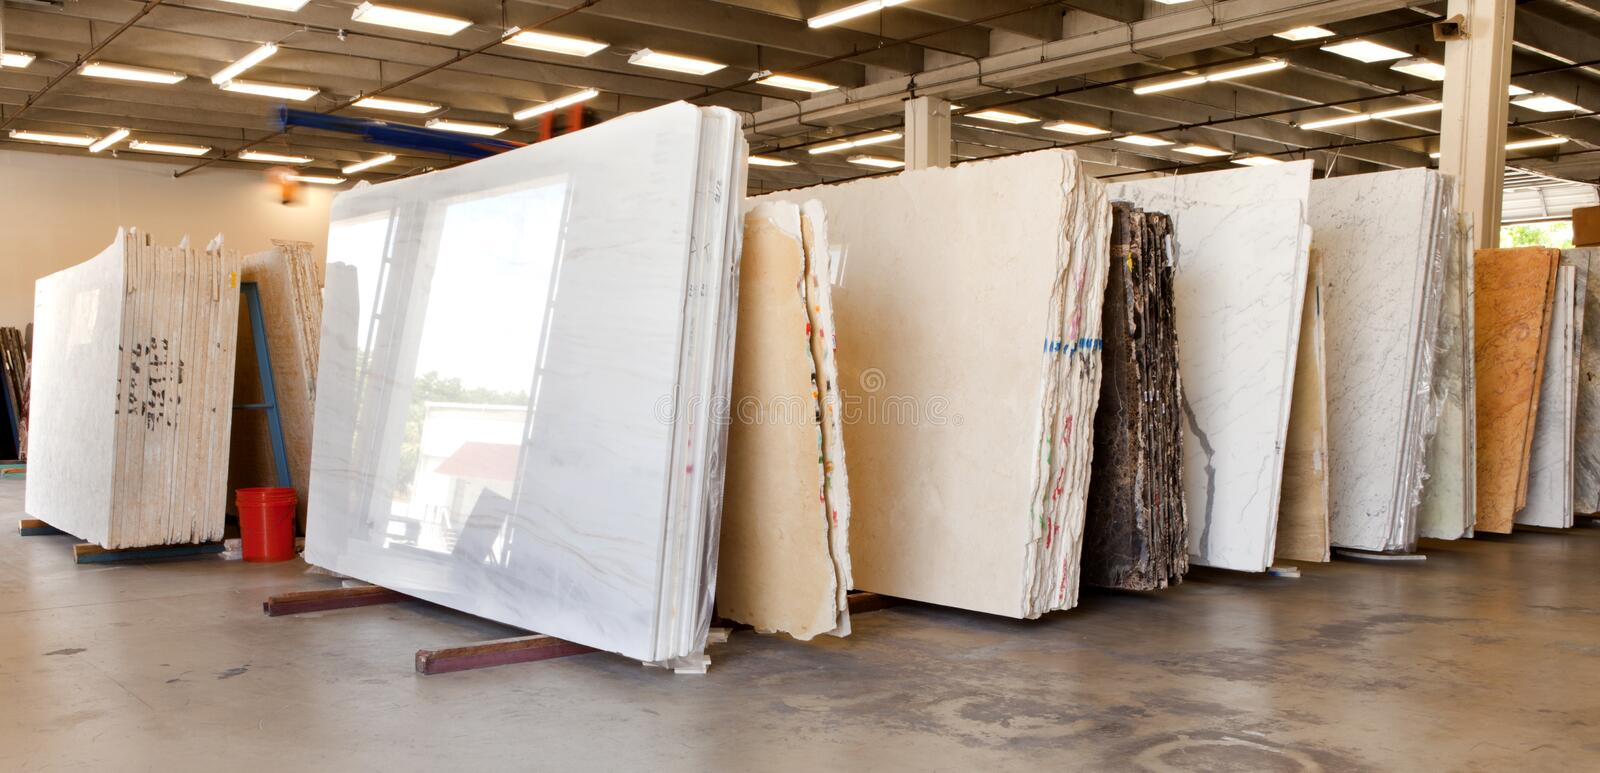 Download Slabs Of Granite In A Storage Warehouse Stock Photo - Image: 26640994